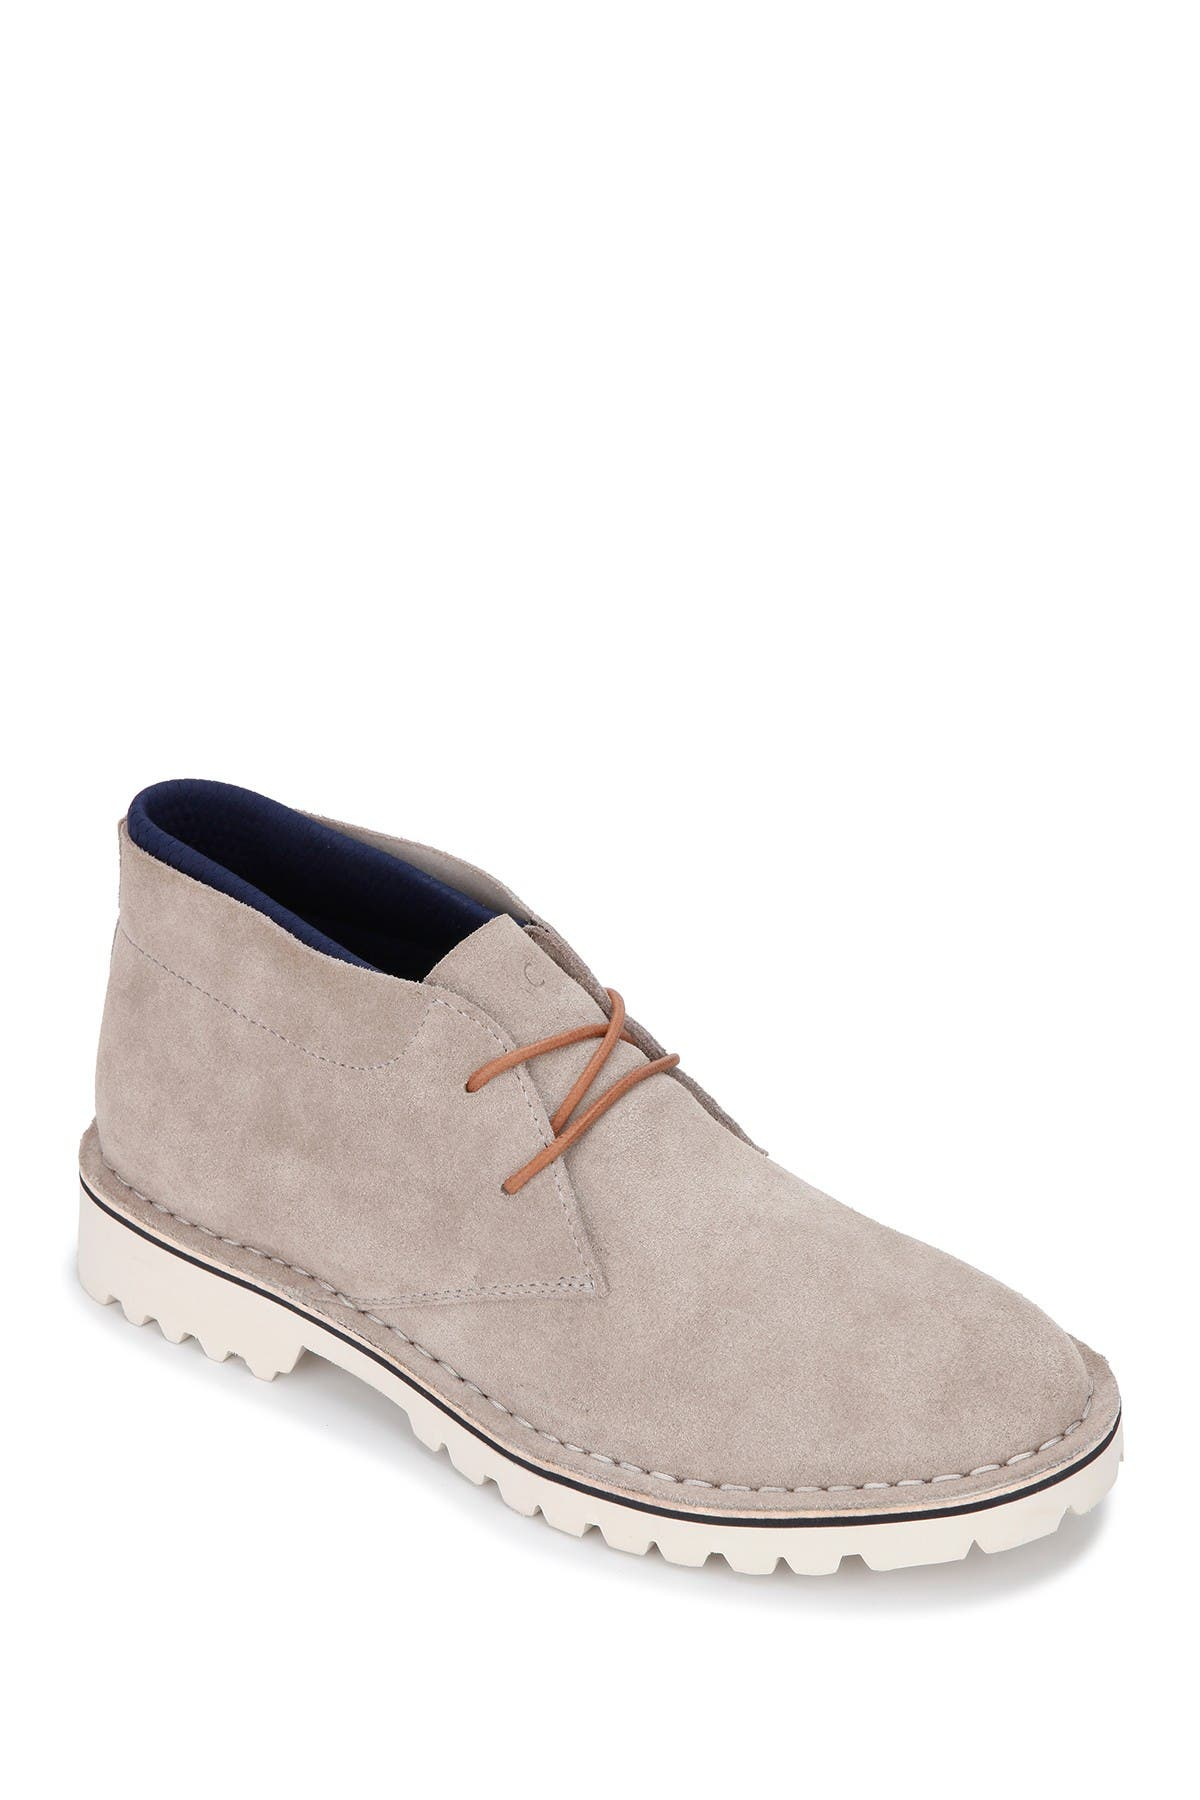 Image of Kenneth Cole Reaction Abie Desert Chukka Boot